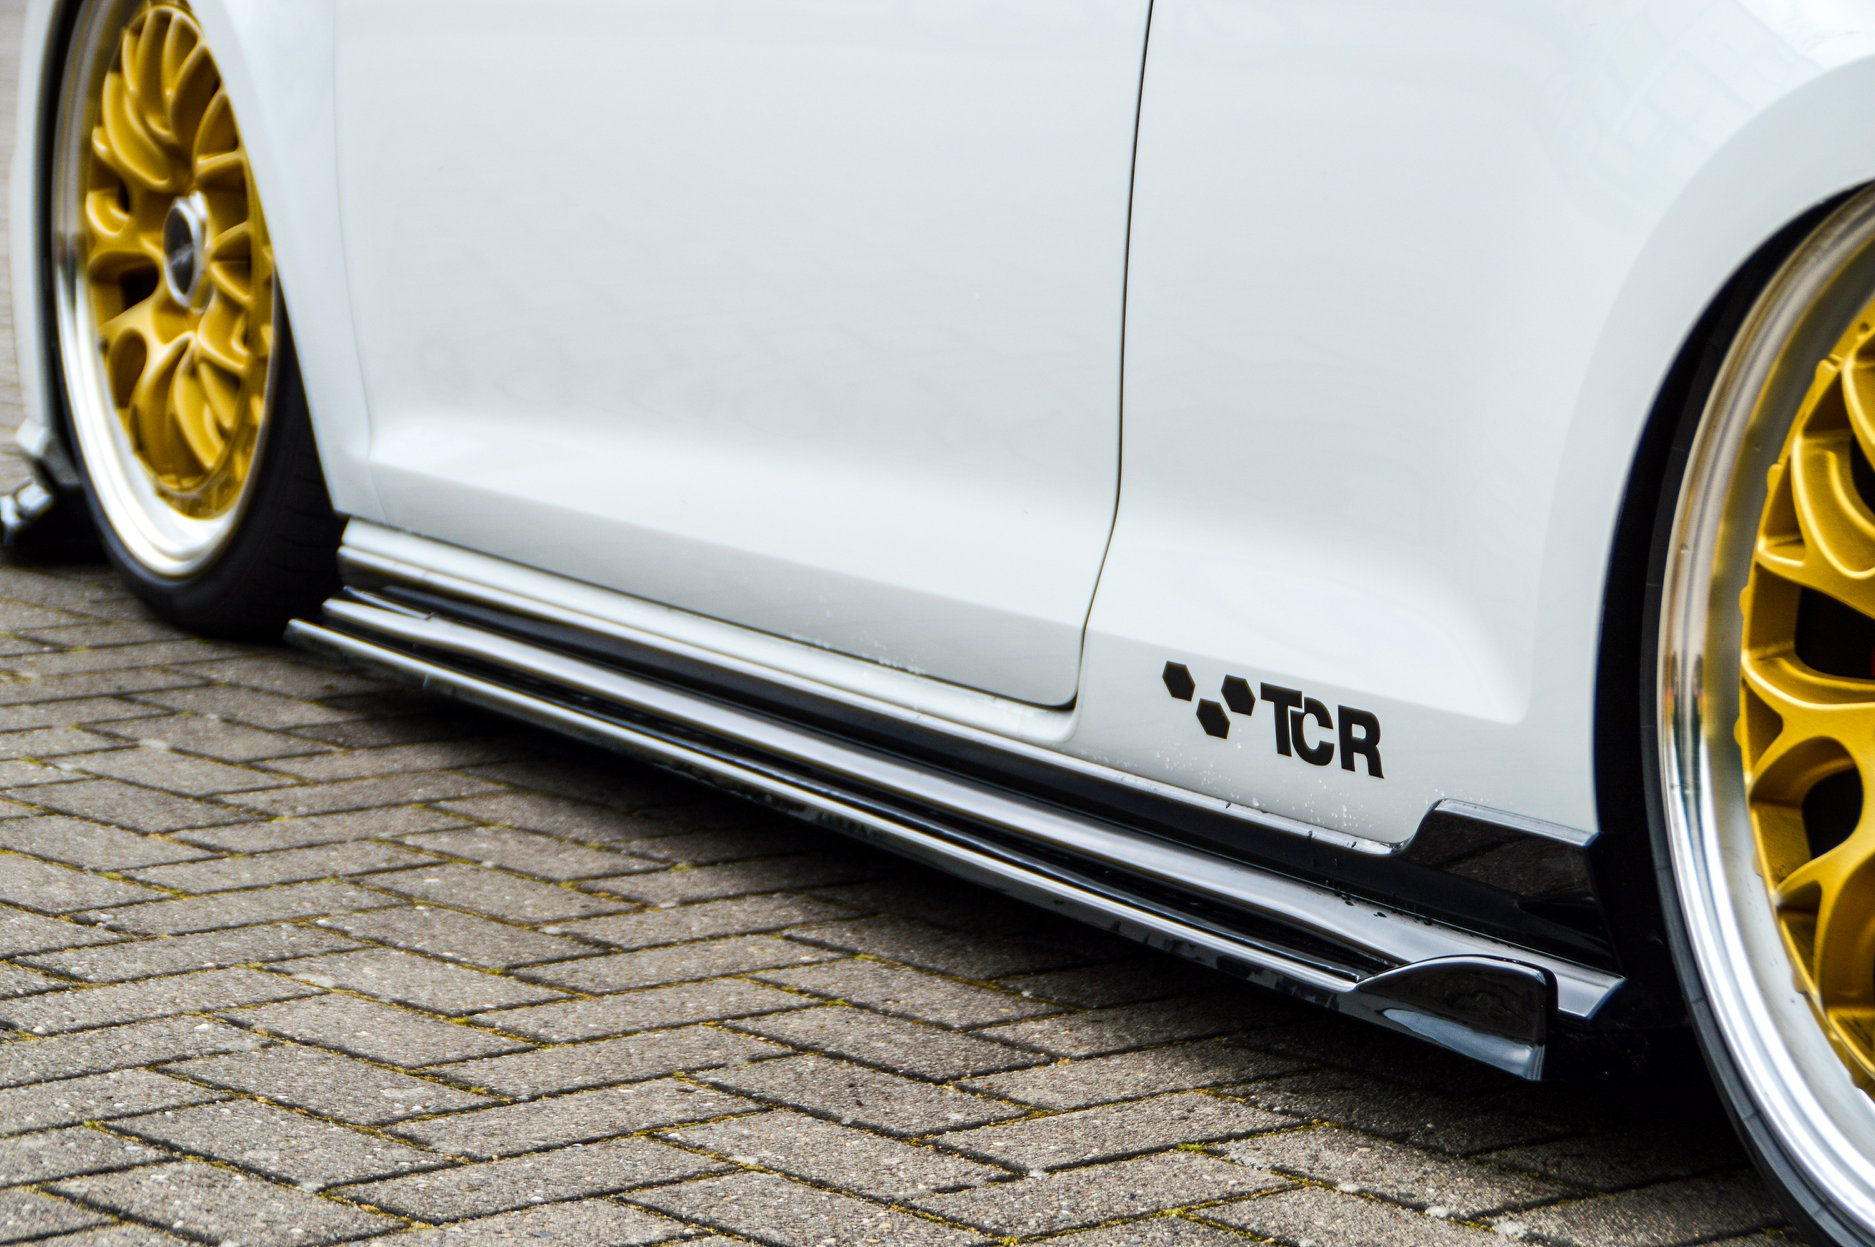 VW-Golf-7-GTI-TCR-by-Ingo-Noak-Tuning-12